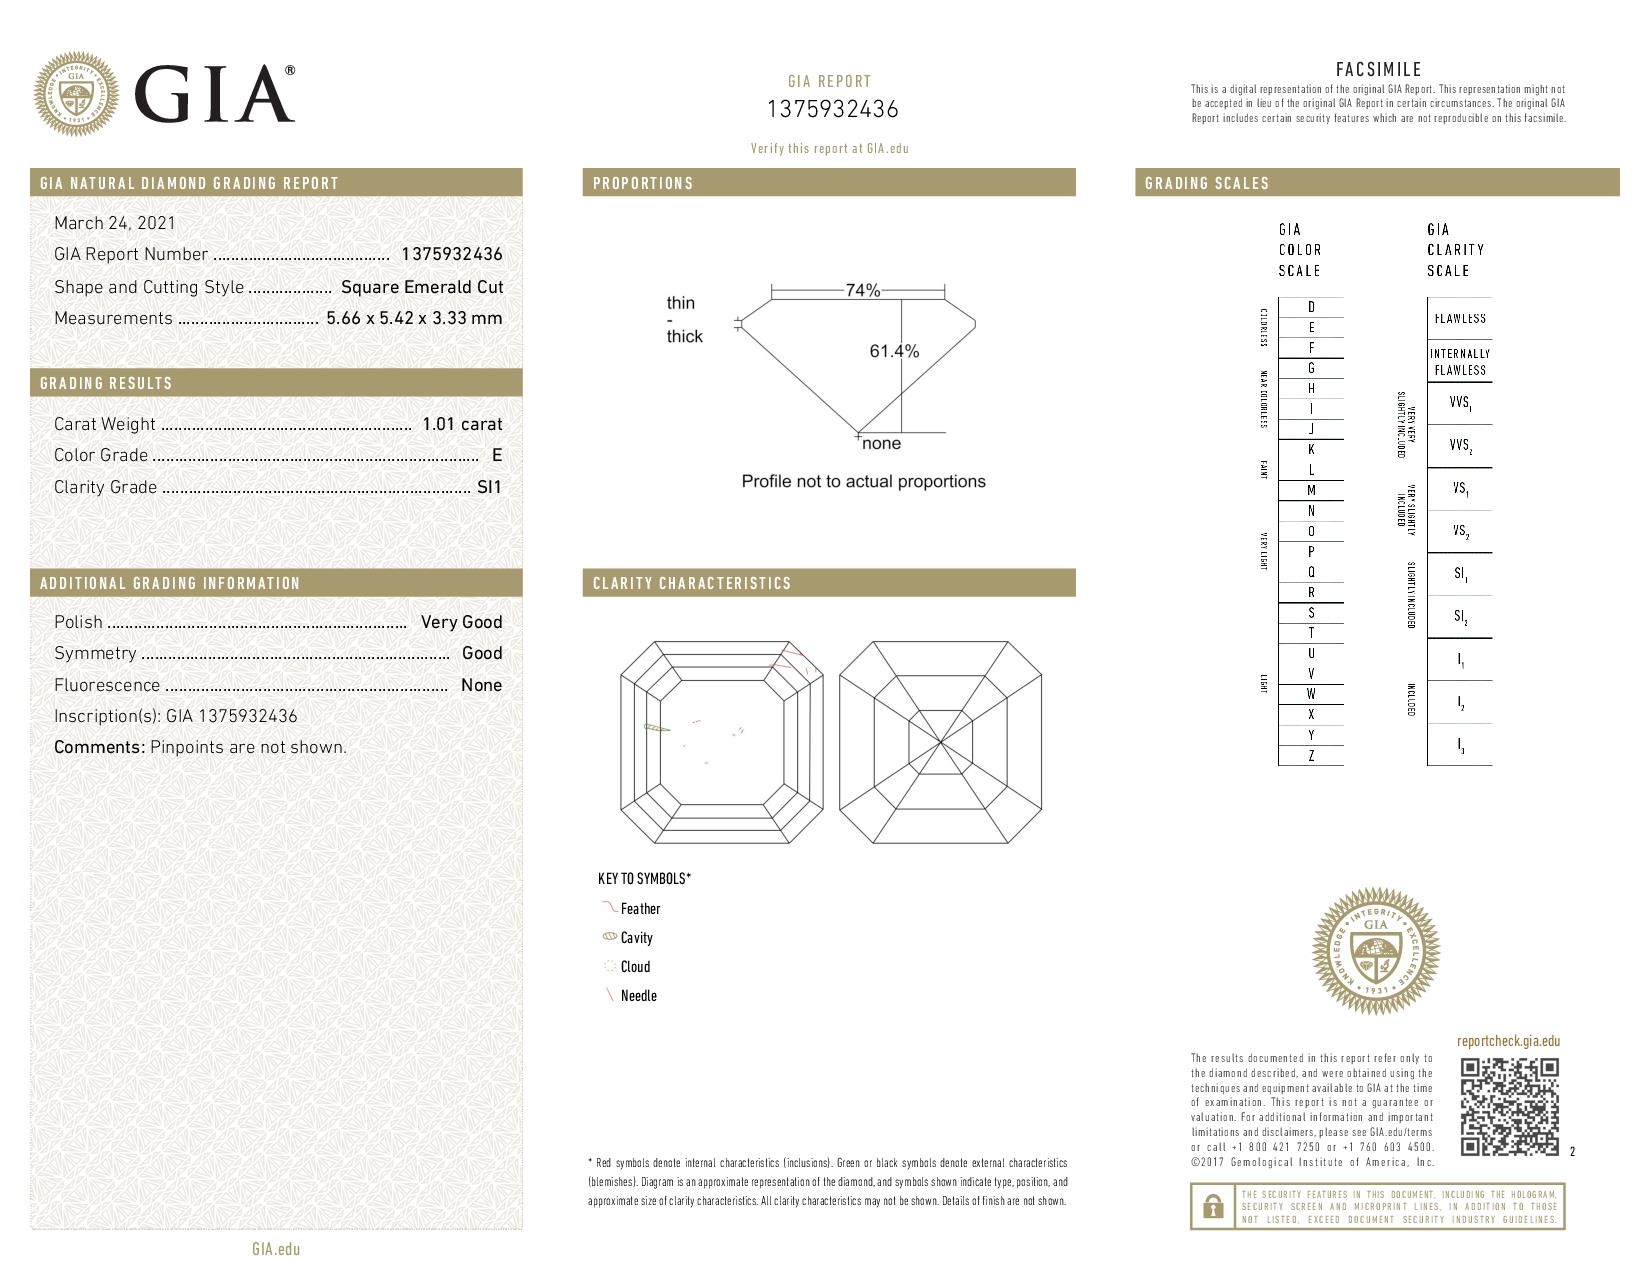 This is a 1.01 carat asscher shape, E color, SI1 clarity natural diamond accompanied by a GIA grading report.